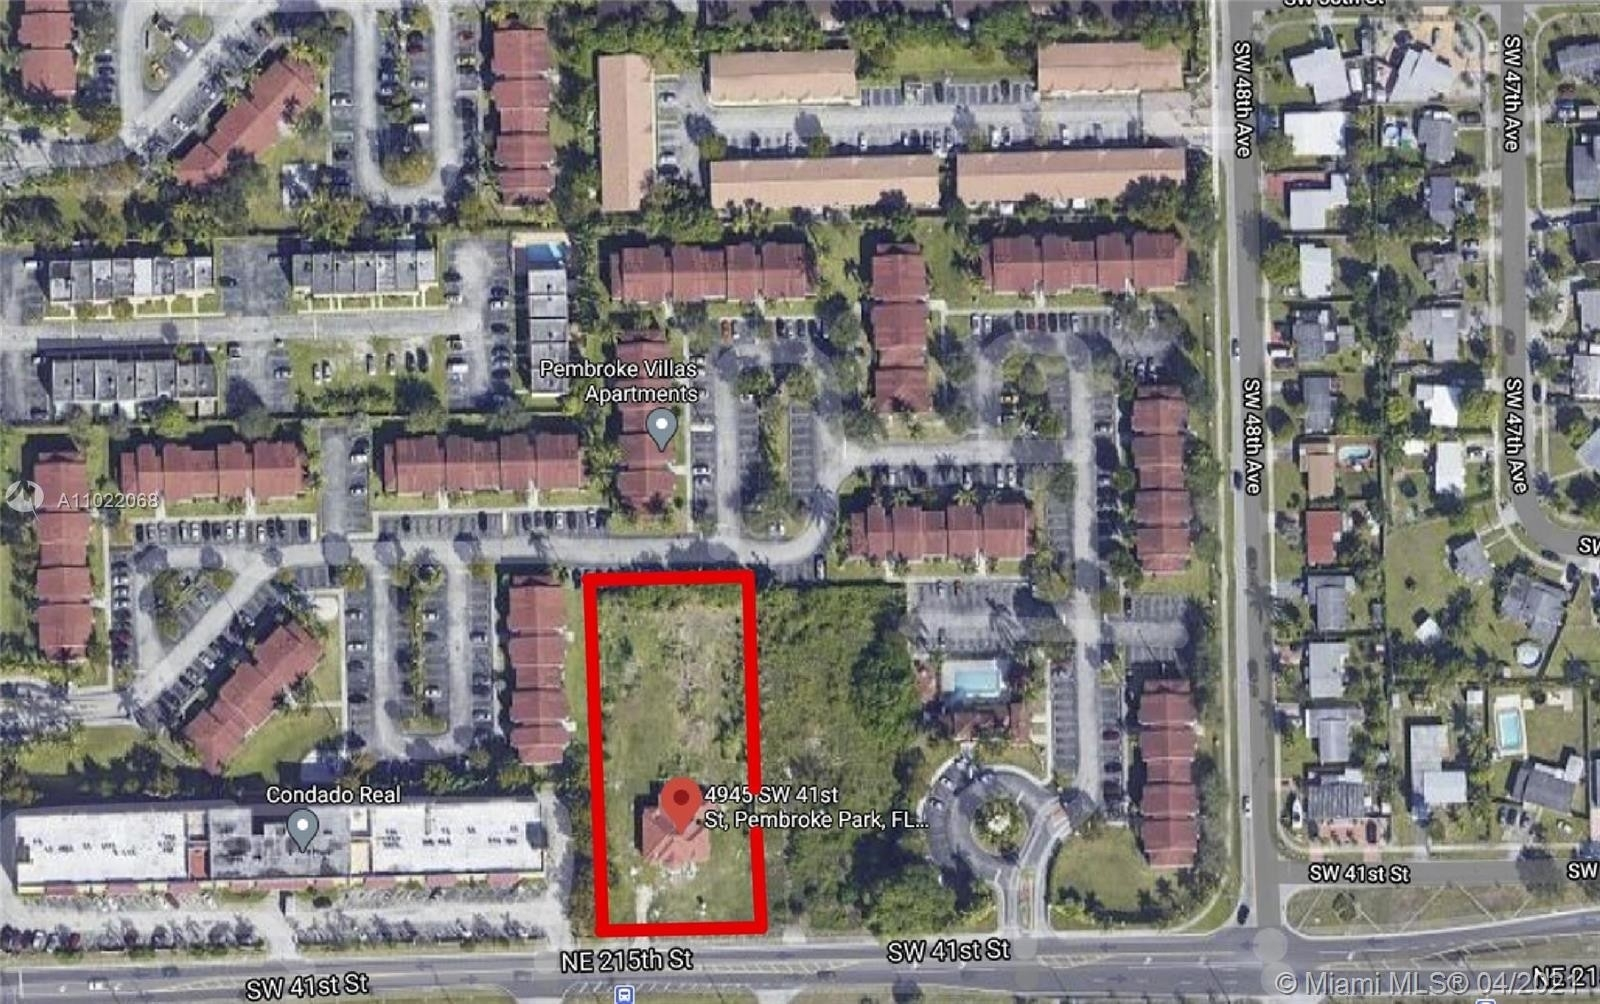 Property for Sale at West Park, Pembroke Park, FL 33023